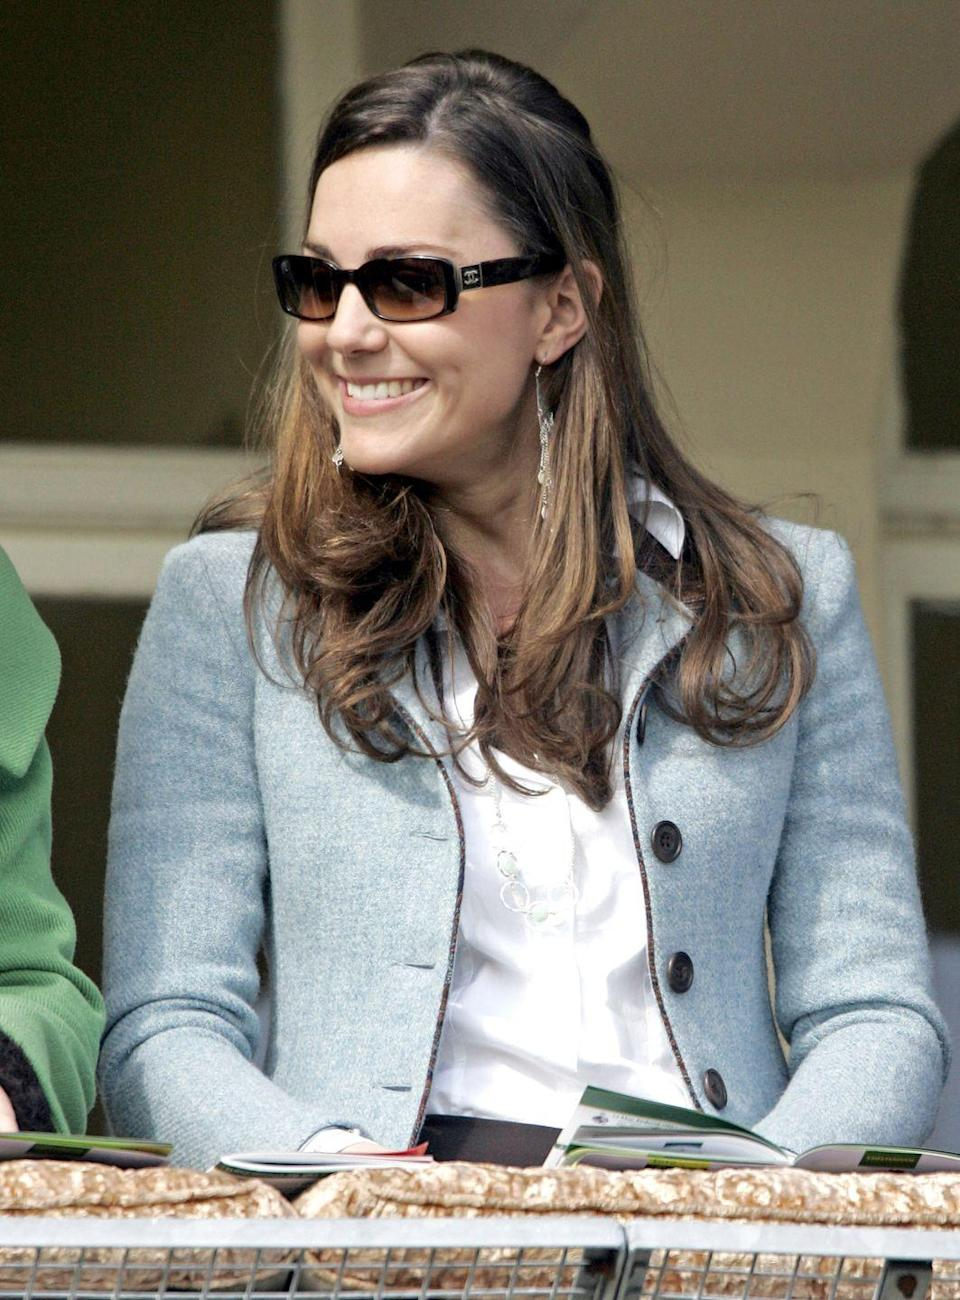 <p>Smiling at the Cheltenham Festival Race Meeting in sunglasses and a pale blue blazer.</p>